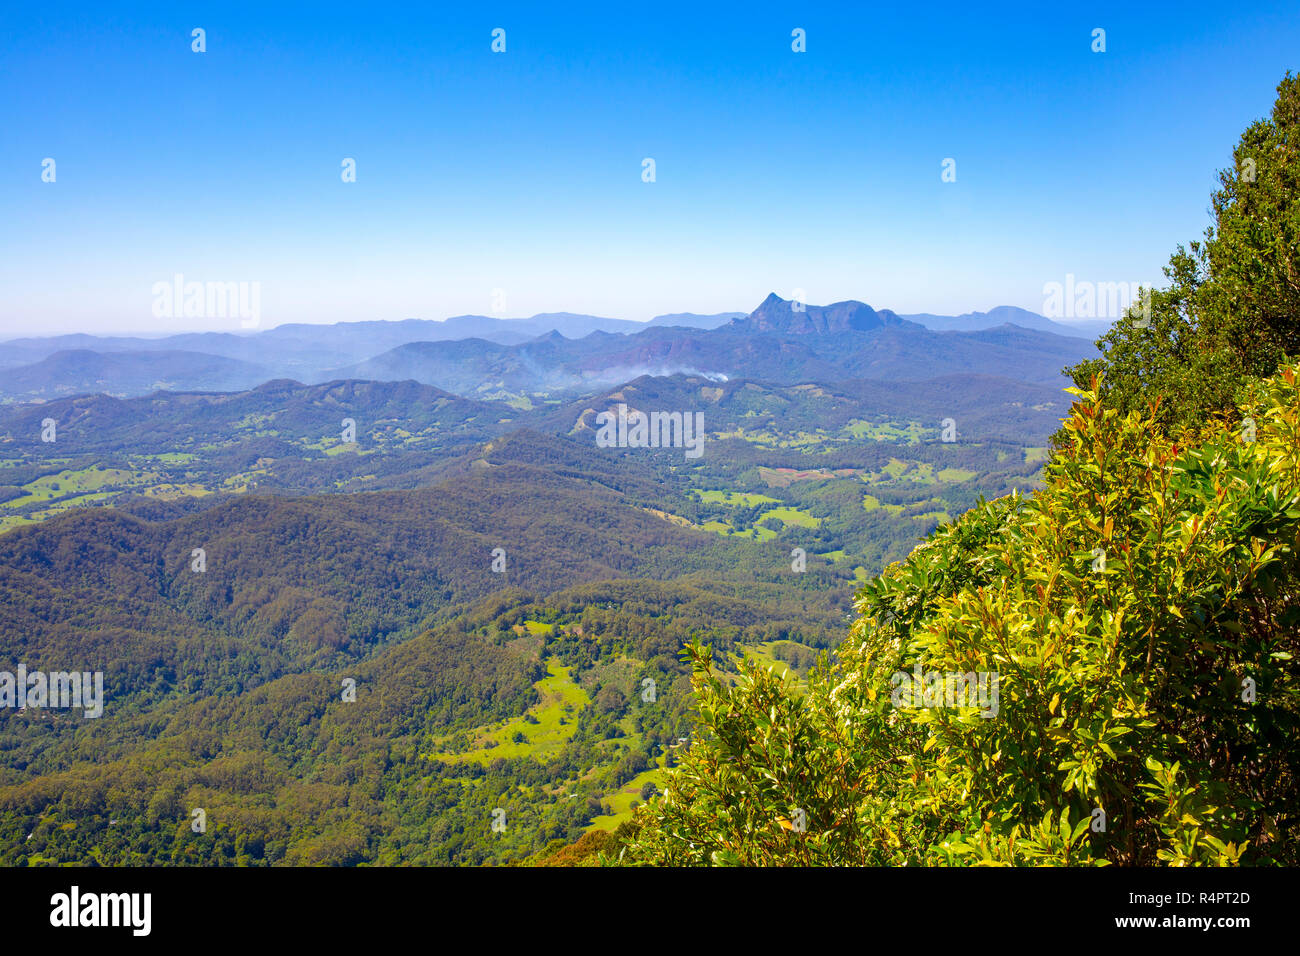 Countryside and nature of Springbrook national park in the Gold coast hinterland,Queensland,Australia - Stock Image